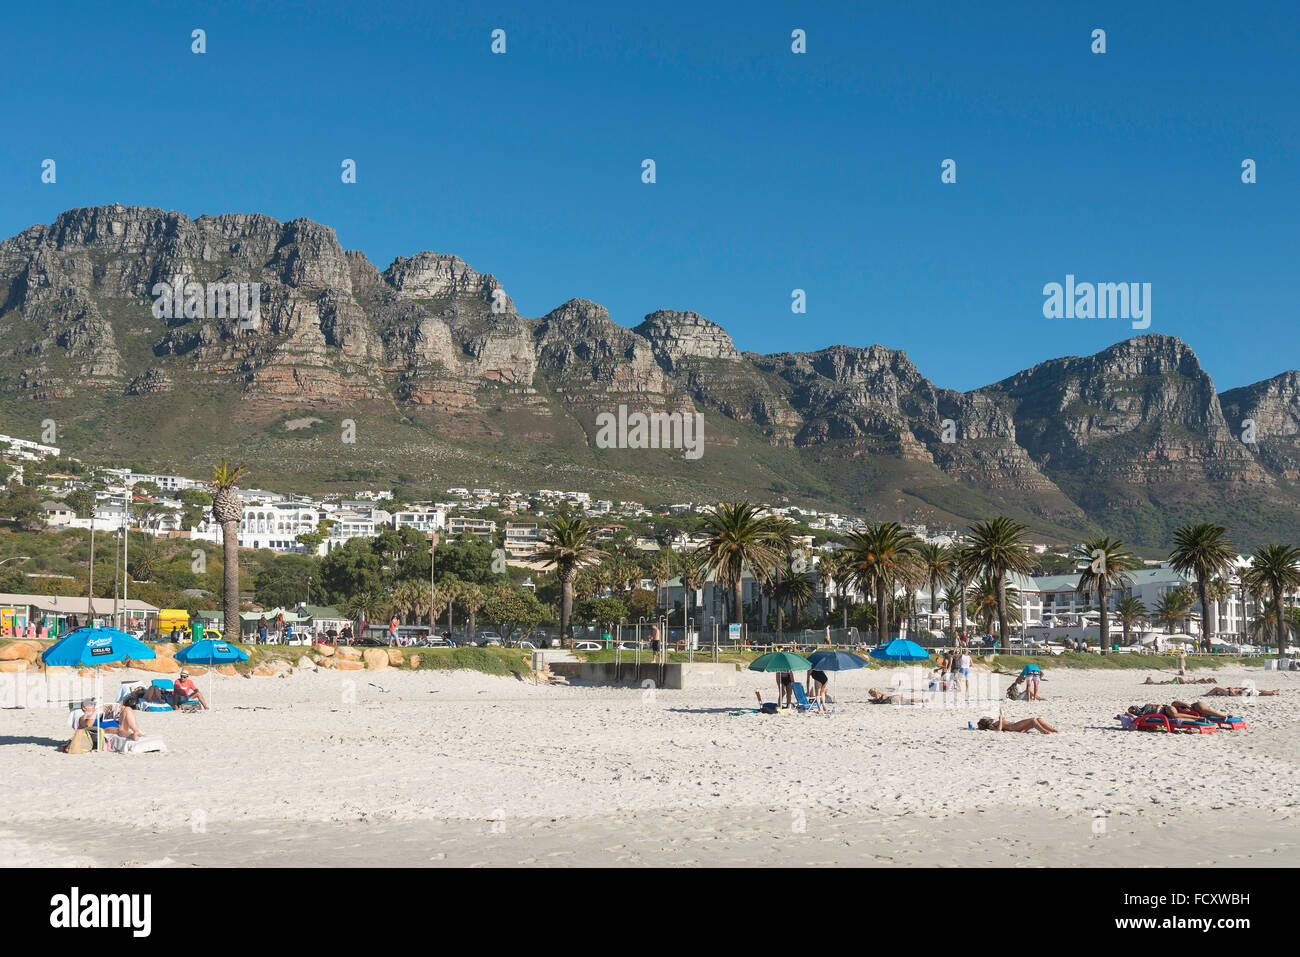 City Of Cape Town: Camps Bay Beach, Camps Bay, Cape Town, City Of Cape Town